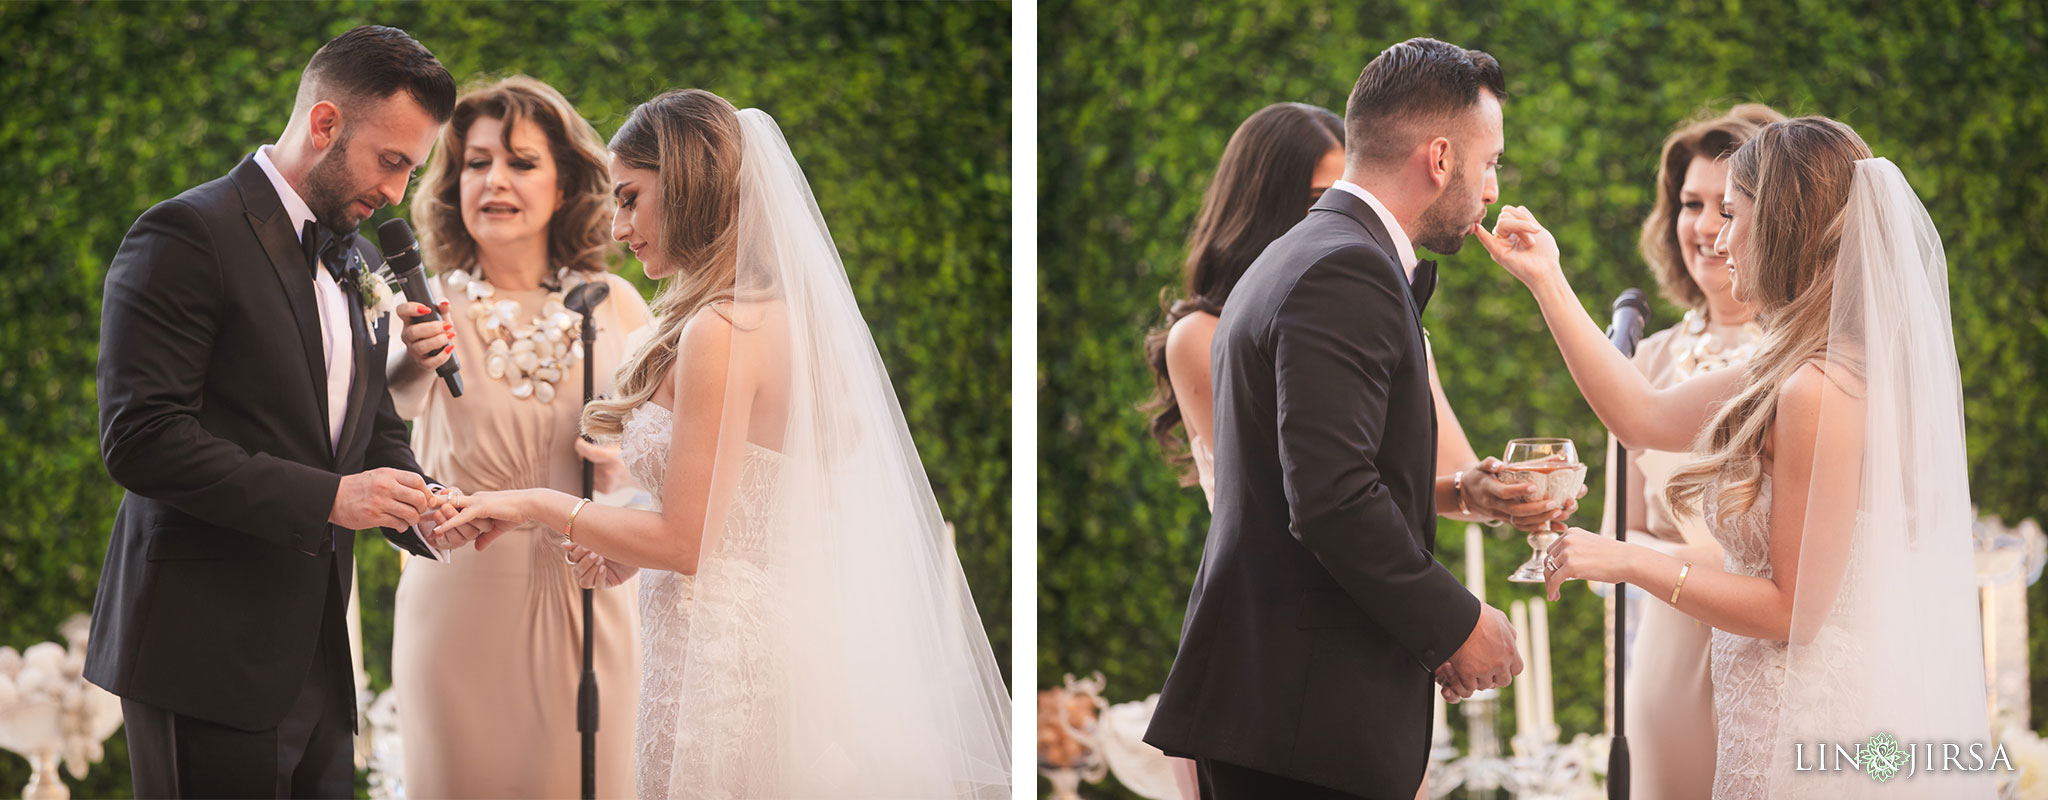 28 montage beverly hills persian wedding photography